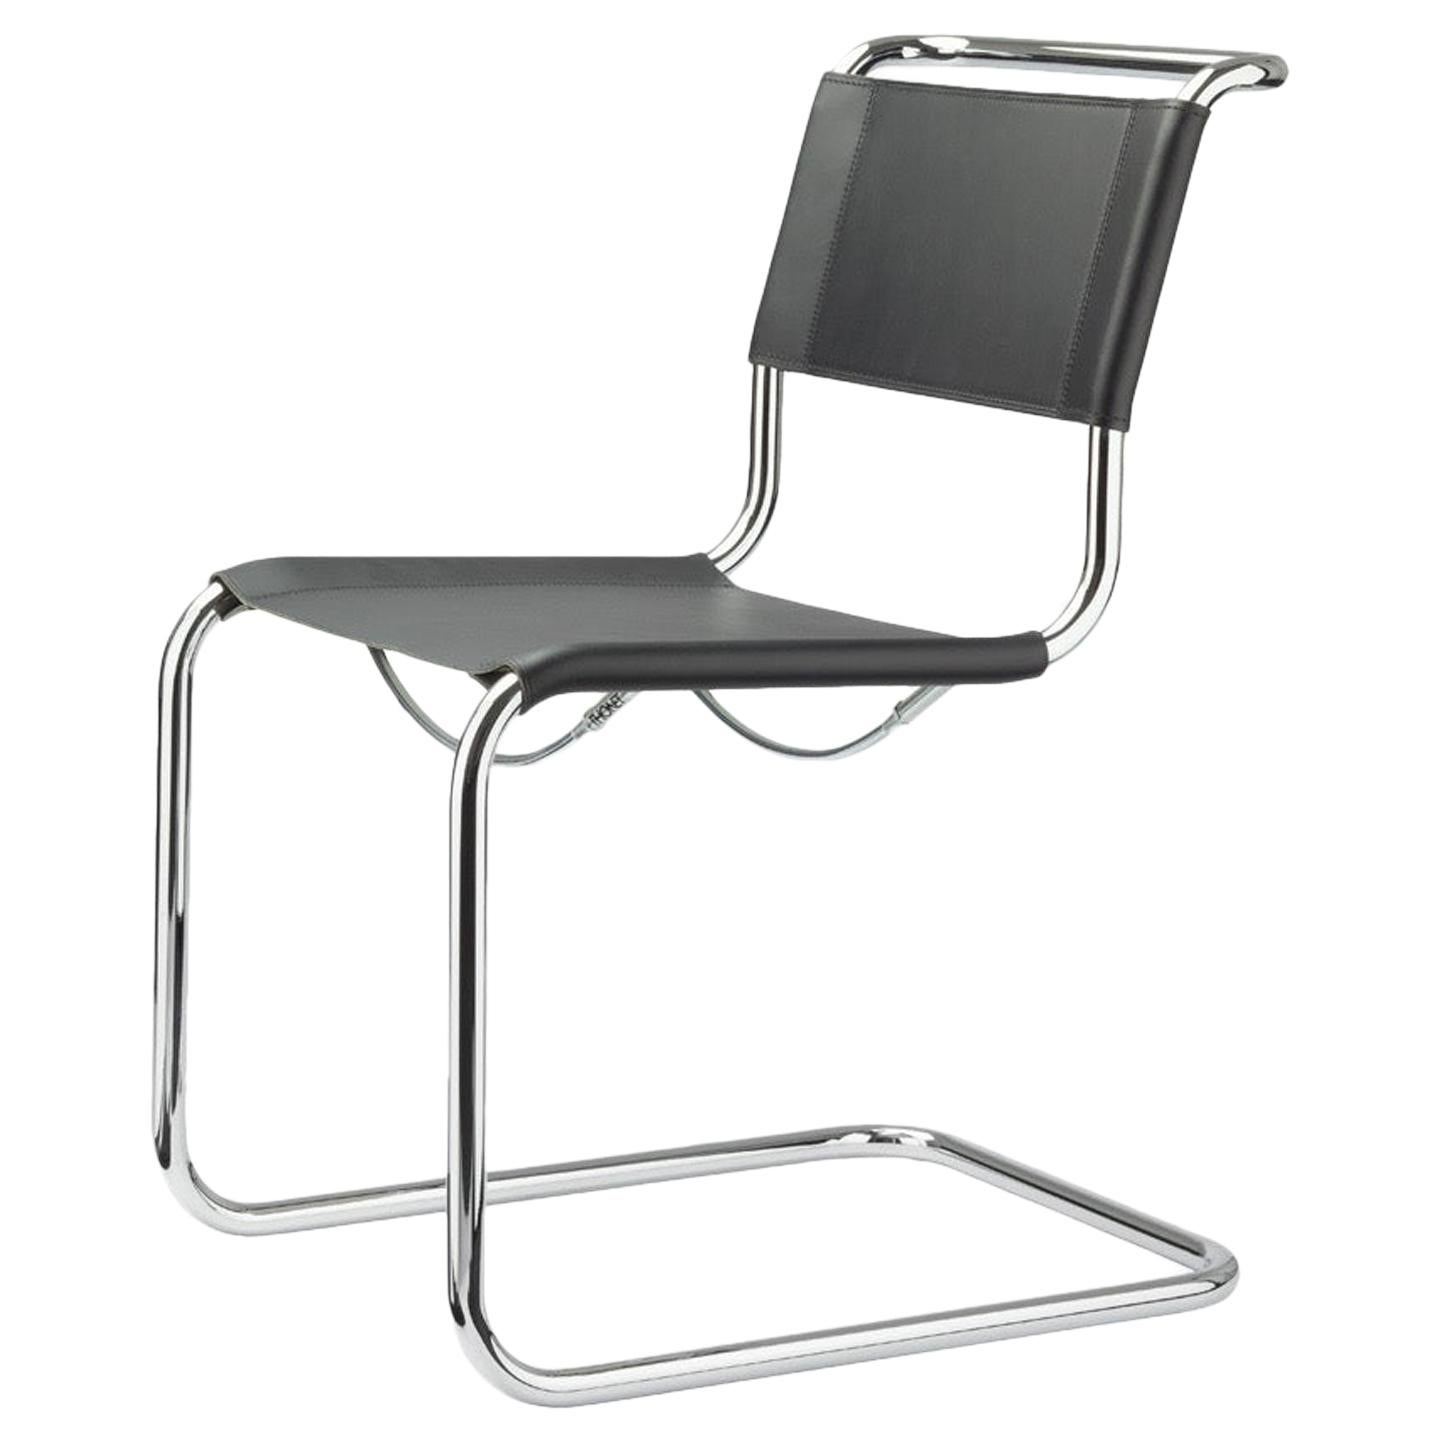 S 33 Cantilever Chair Designed by Mart Stam